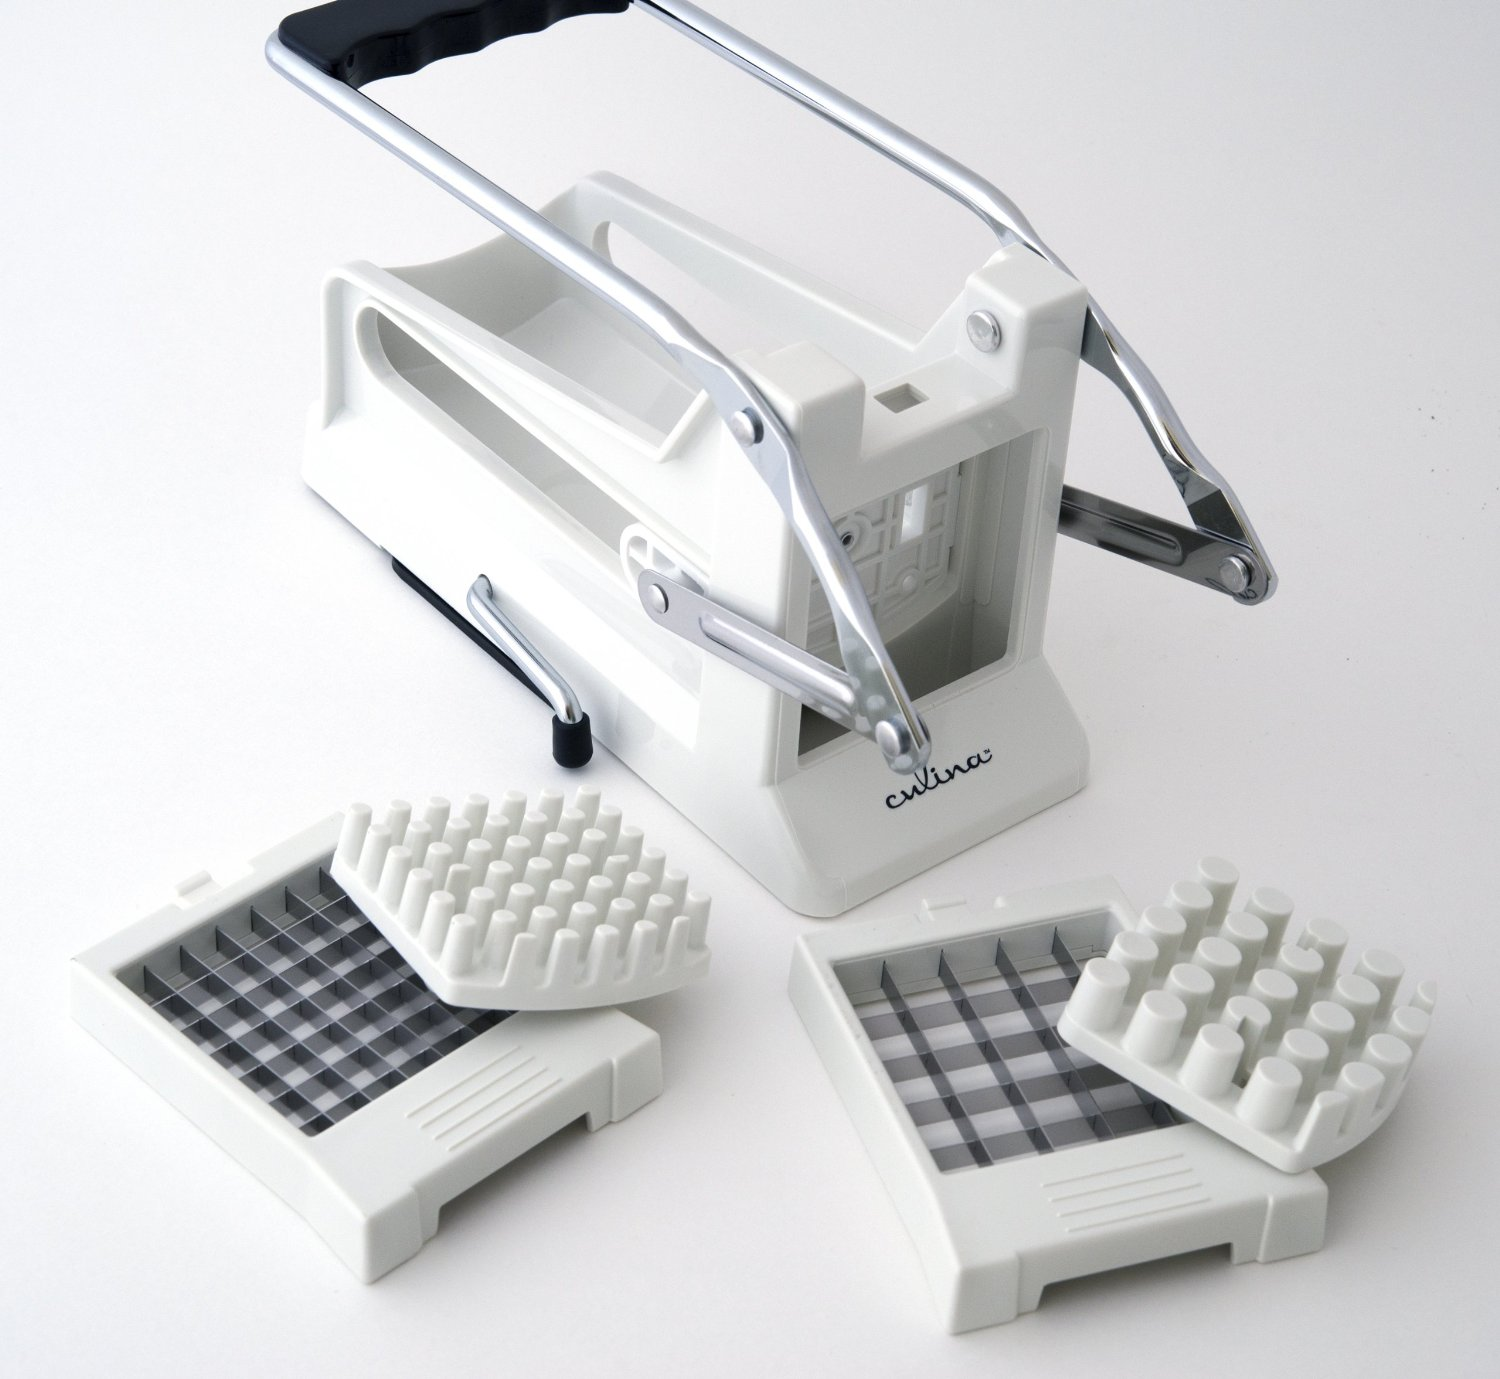 Cucina French Fry Cutter with Cutting Plates